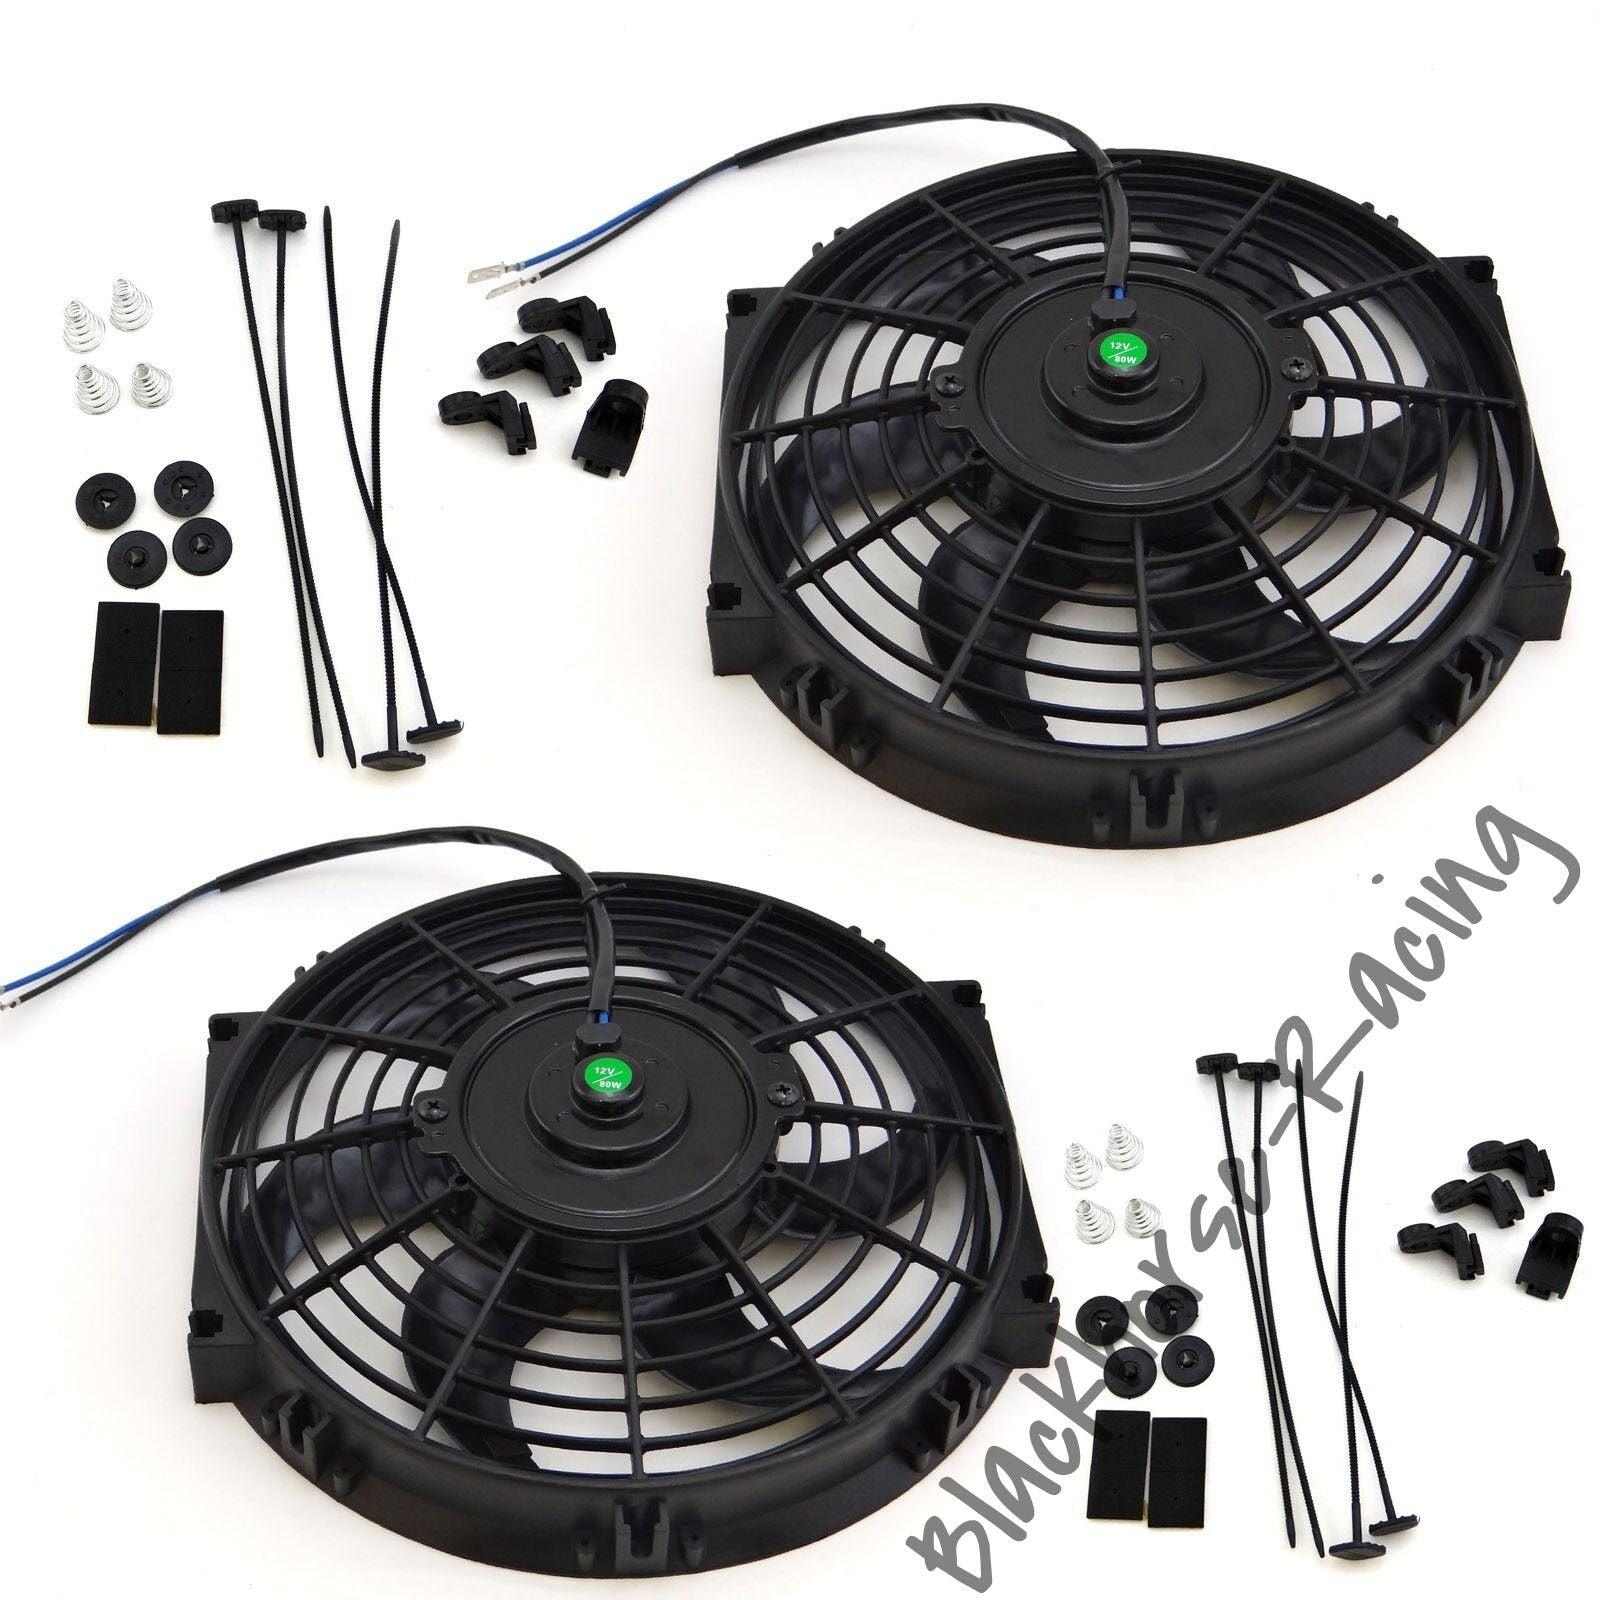 2X 10'' ELECTRIC RADIATOR/ENGINE COOLING FAN+MOUNTING ZIP TIE KITS BLACK